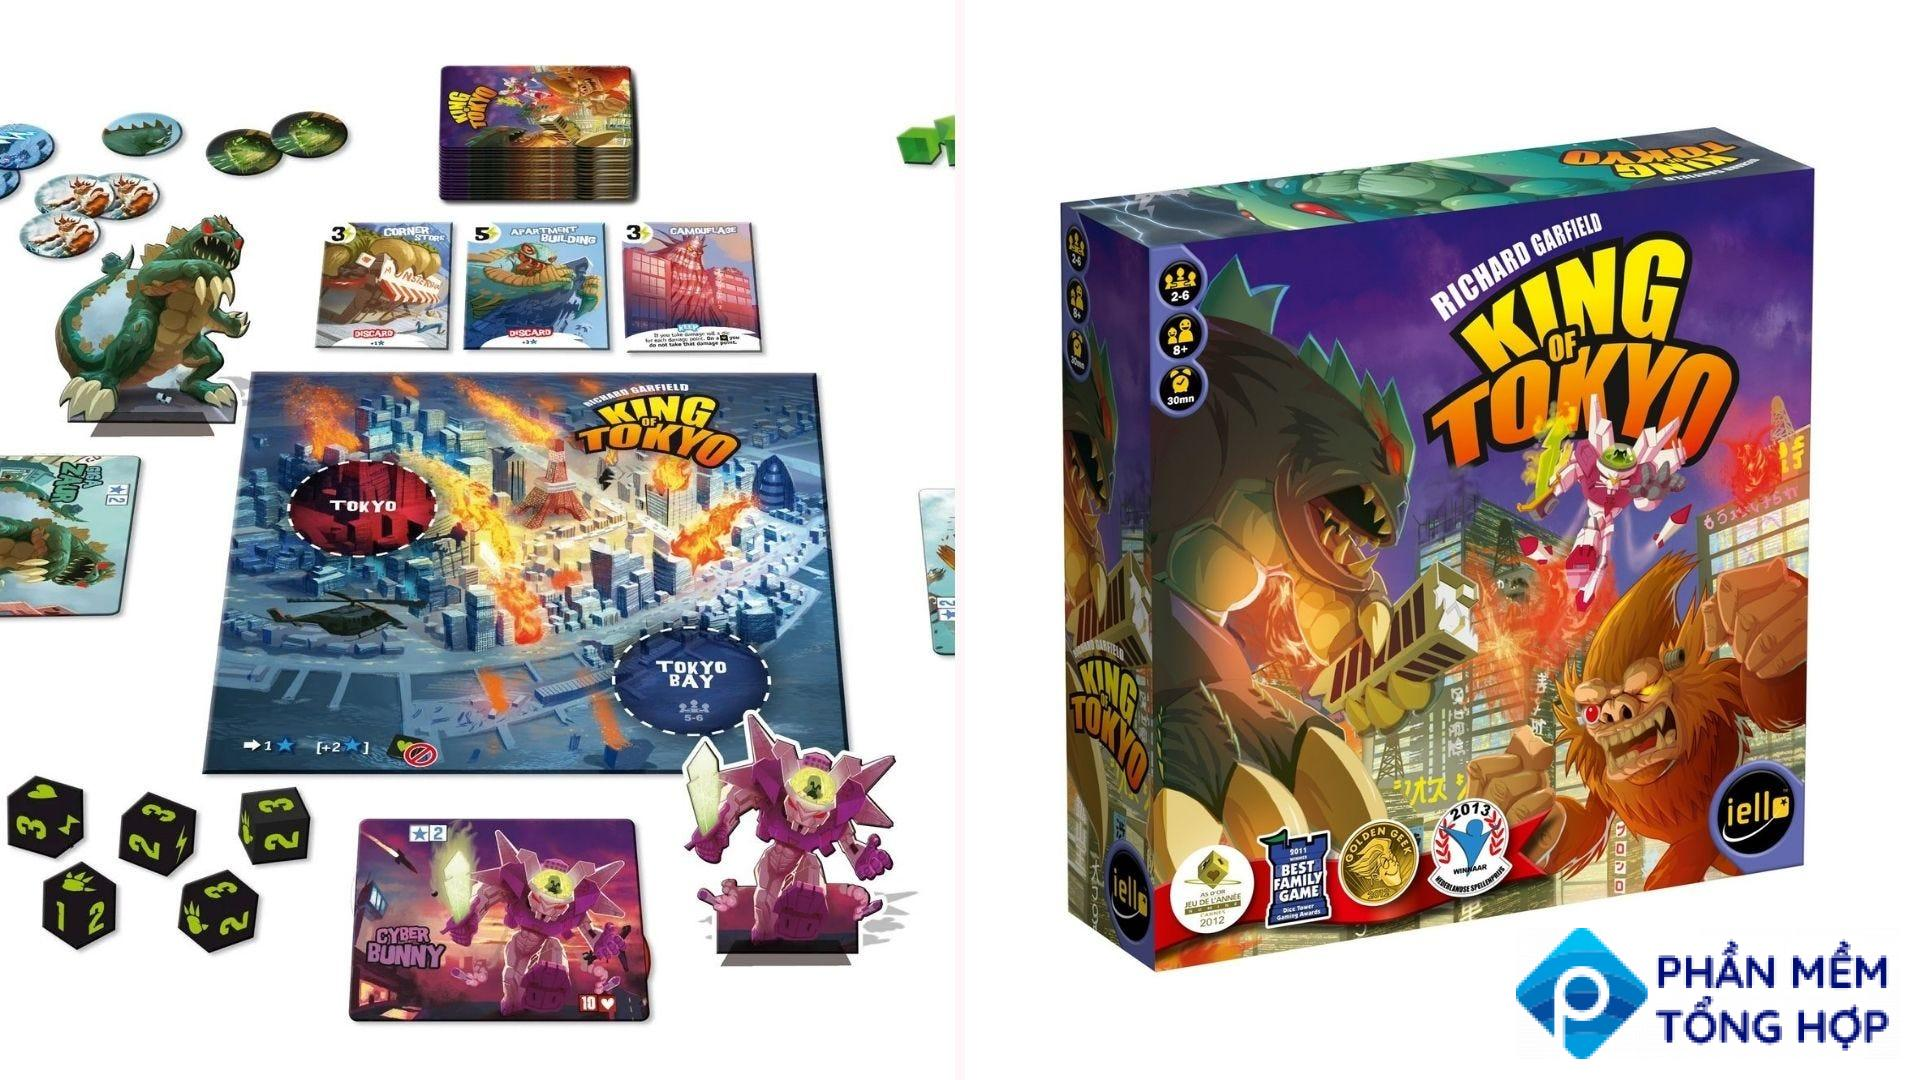 The King of Tokyo boardgame pieces and the box.